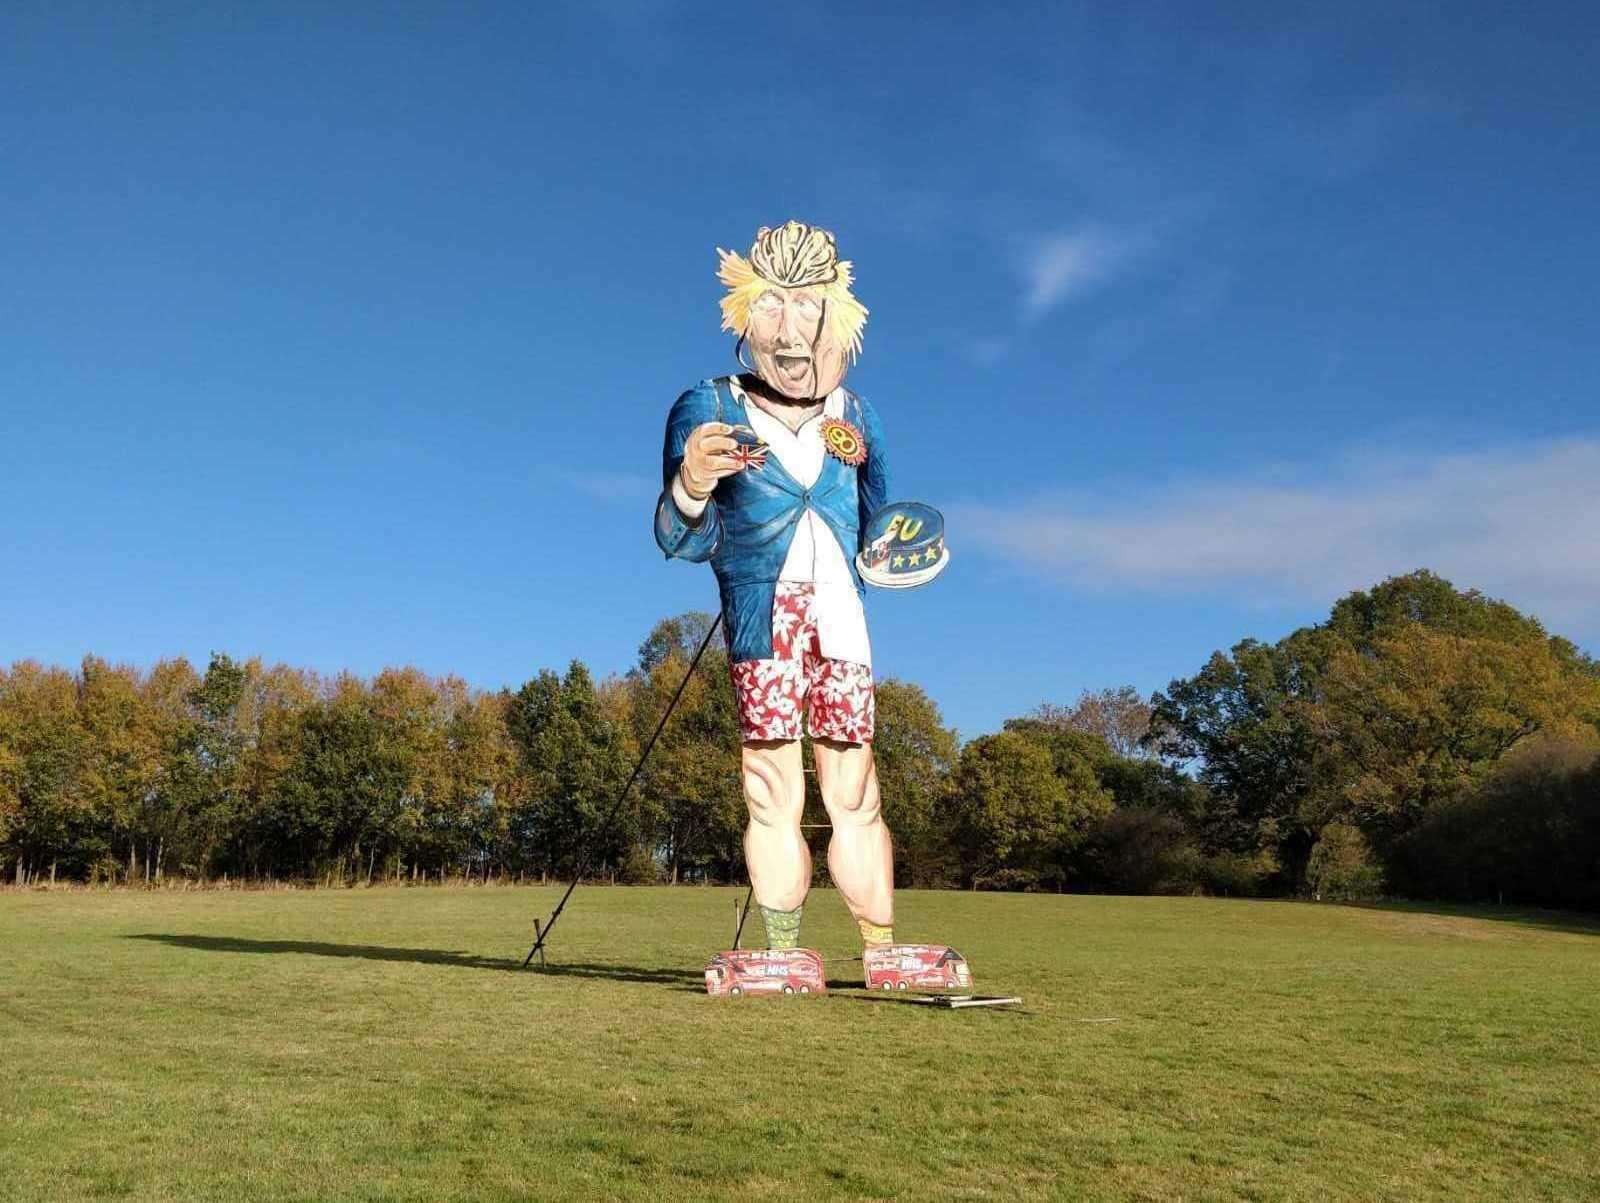 Boris Johnson is the latest celebrity effigy to be burned at the Edenbridge bonfire